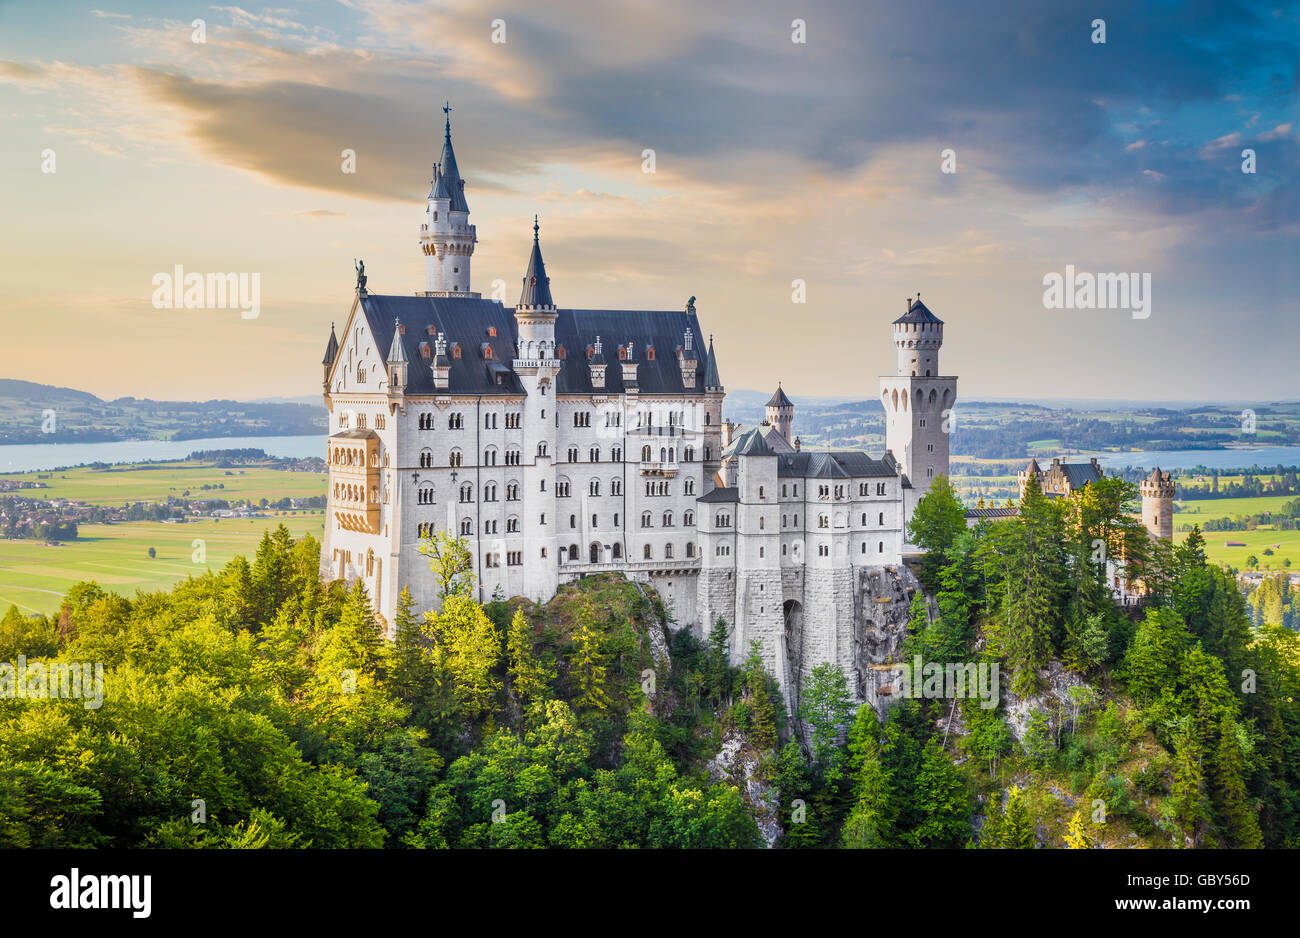 Classic view of world-famous Neuschwanstein Castle, one of Europe's most visited castles, at sunset, Bavaria, - Stock Image